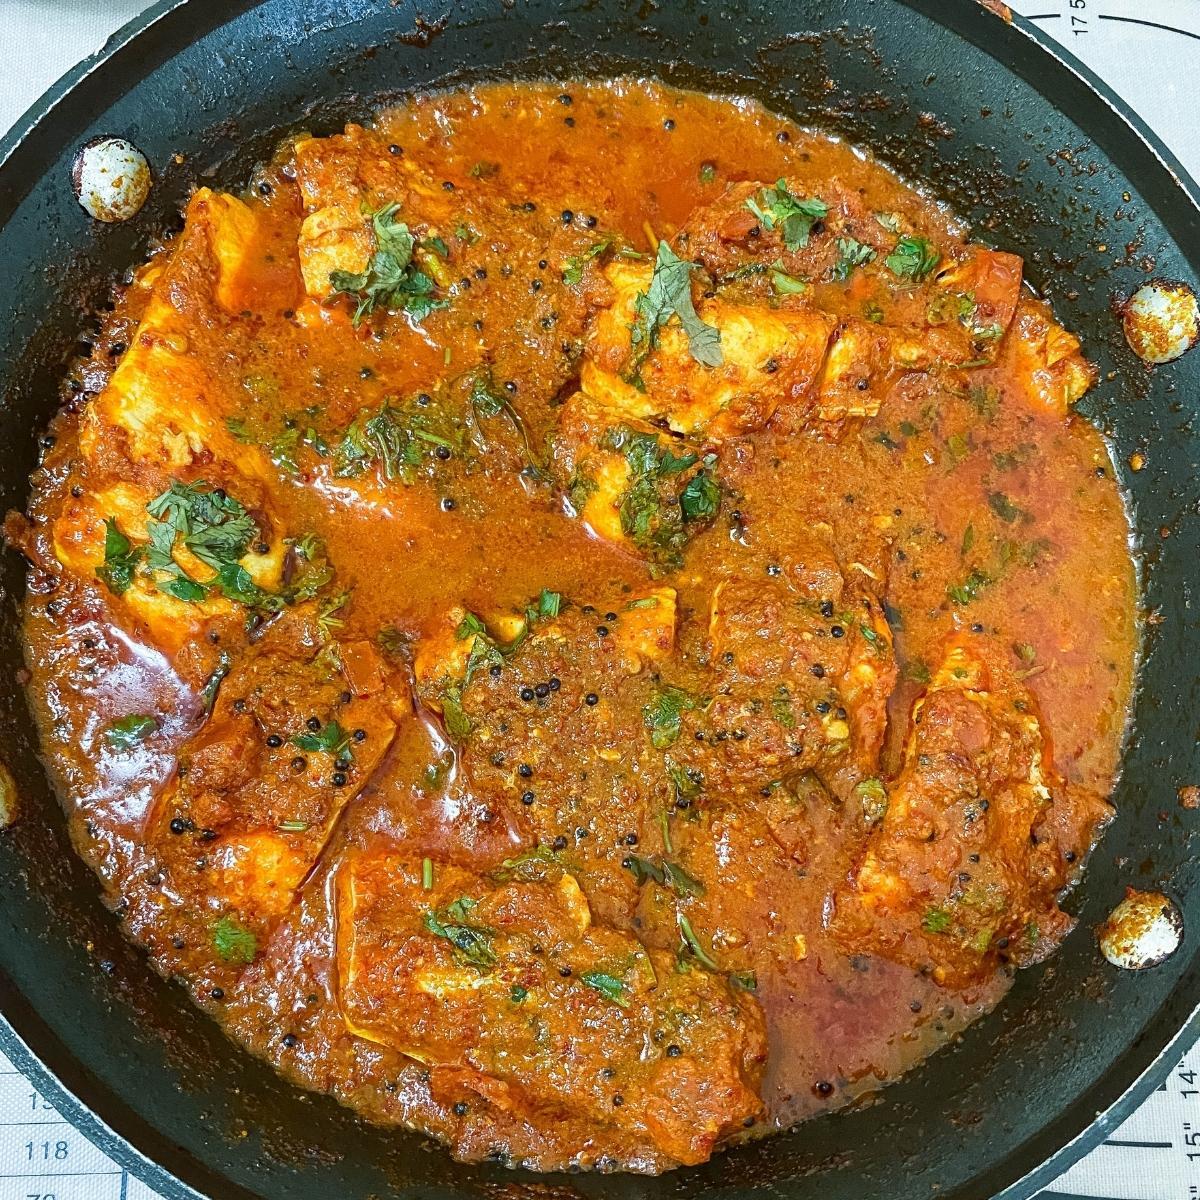 Fish curry in the skillet.